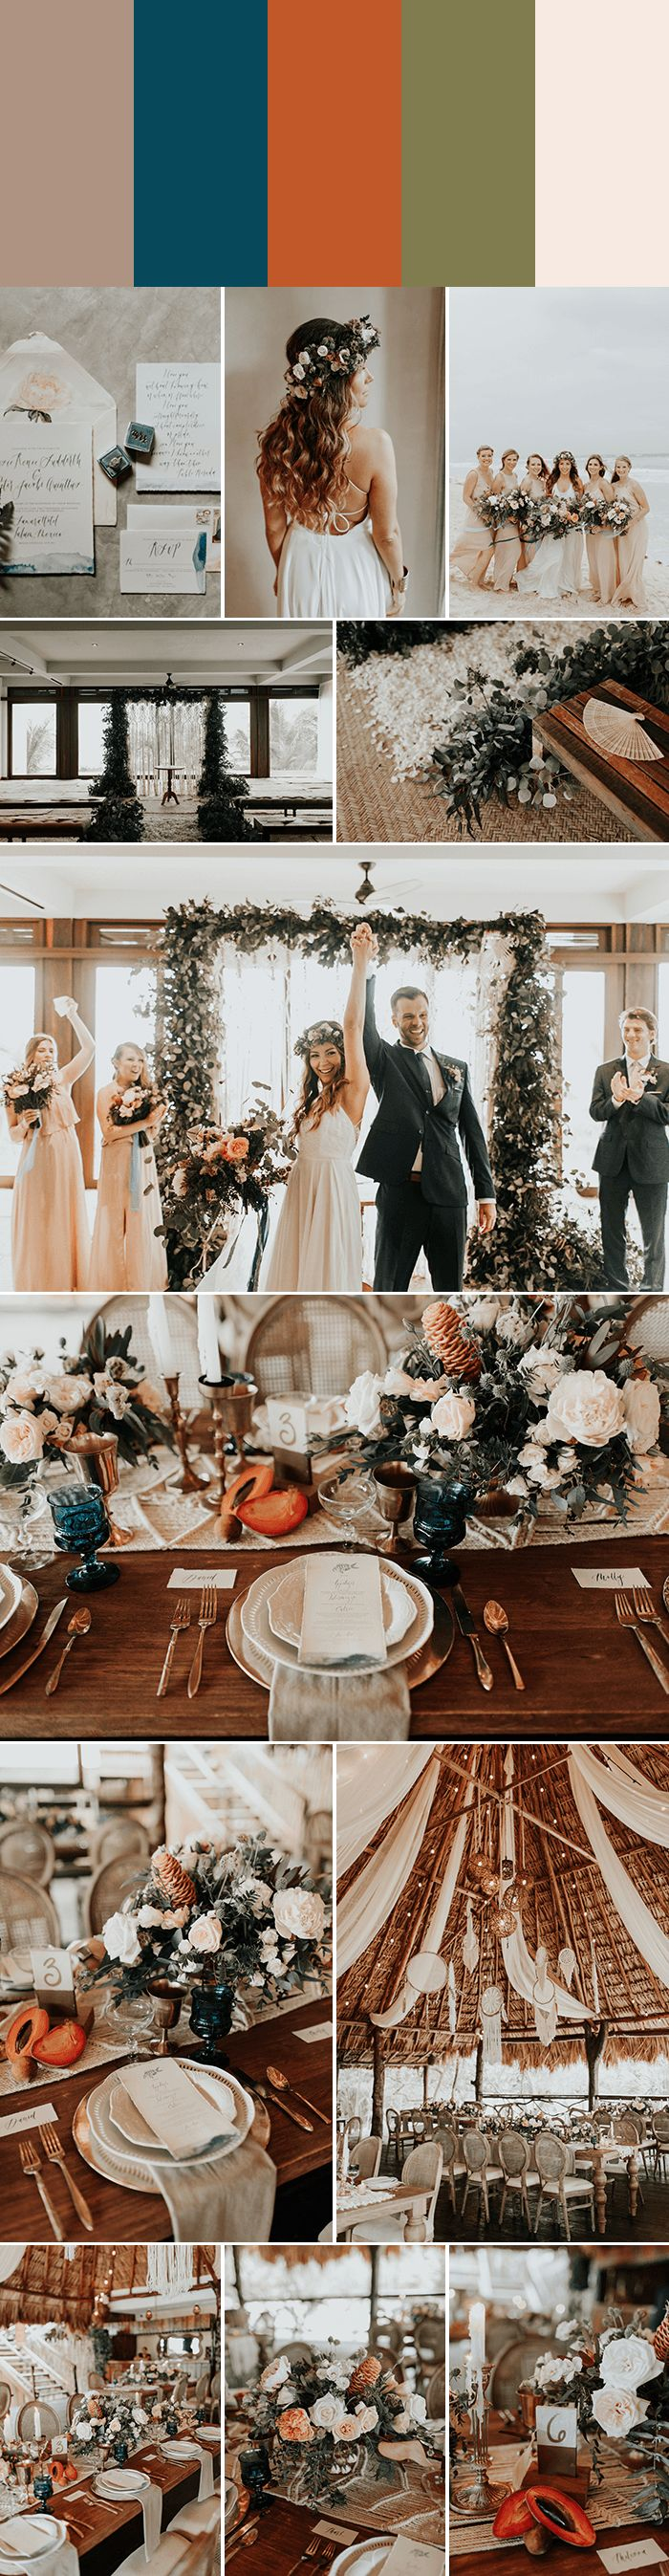 Taupe + Peacock Blue + papaya + Dried Eucalyptus + Sand perf for a breezy beach wedding | Images by Melissa Marshall